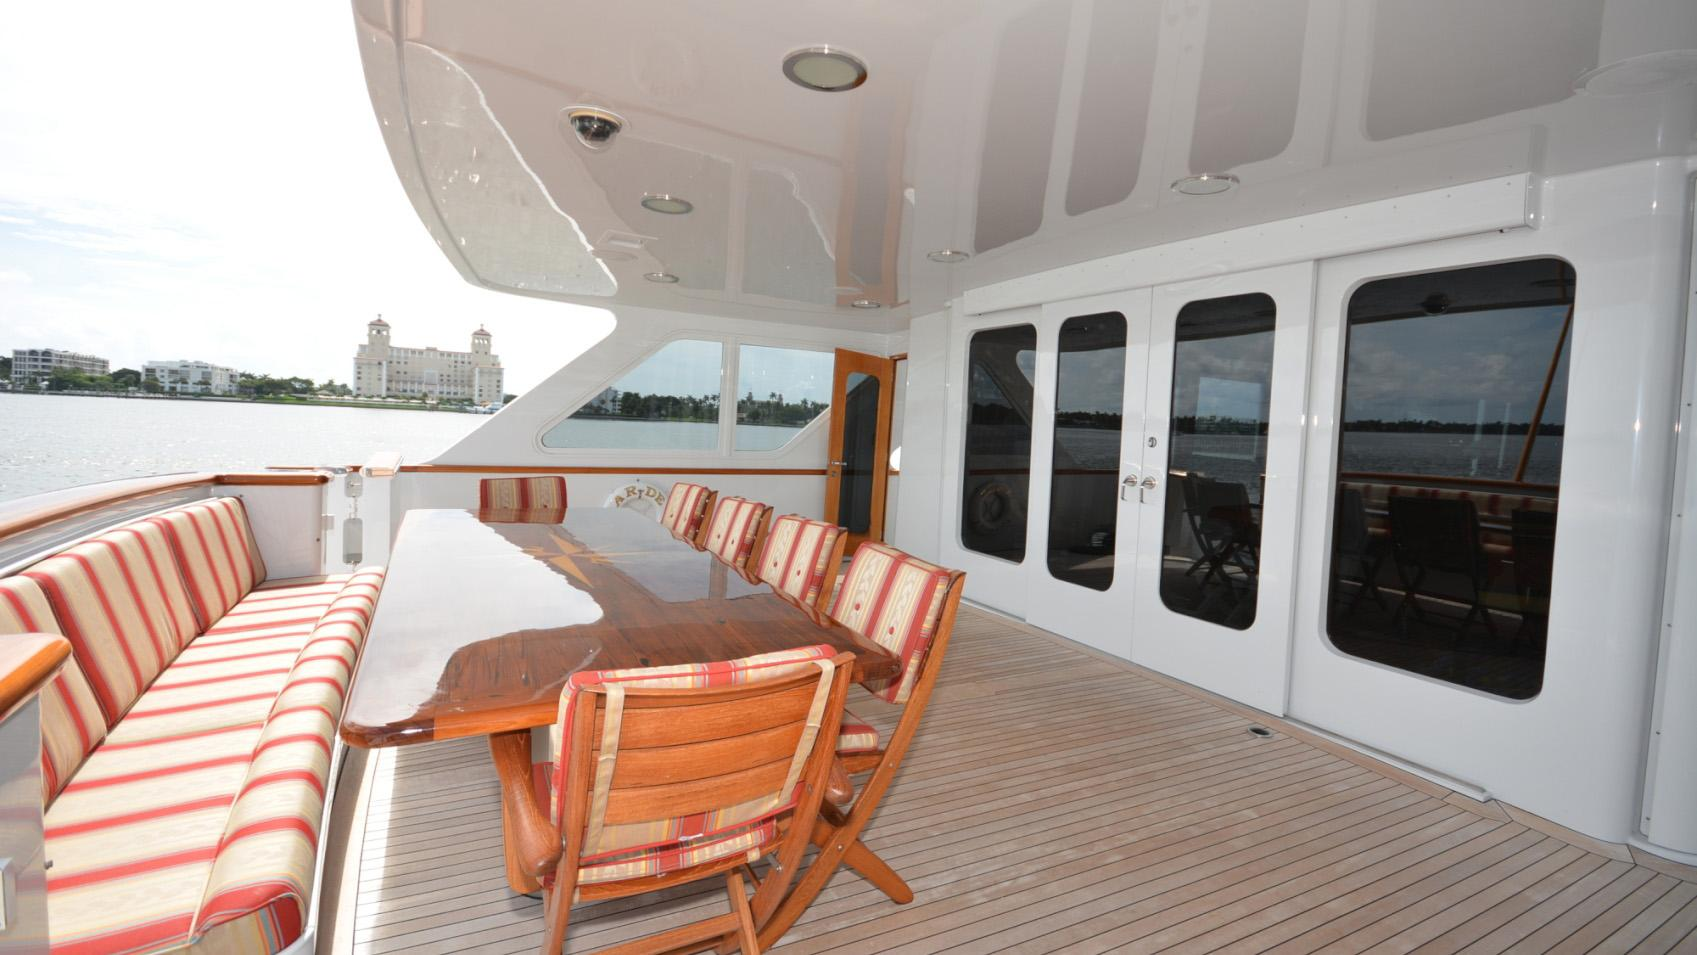 Ar De motor yacht for sale aft deck dining